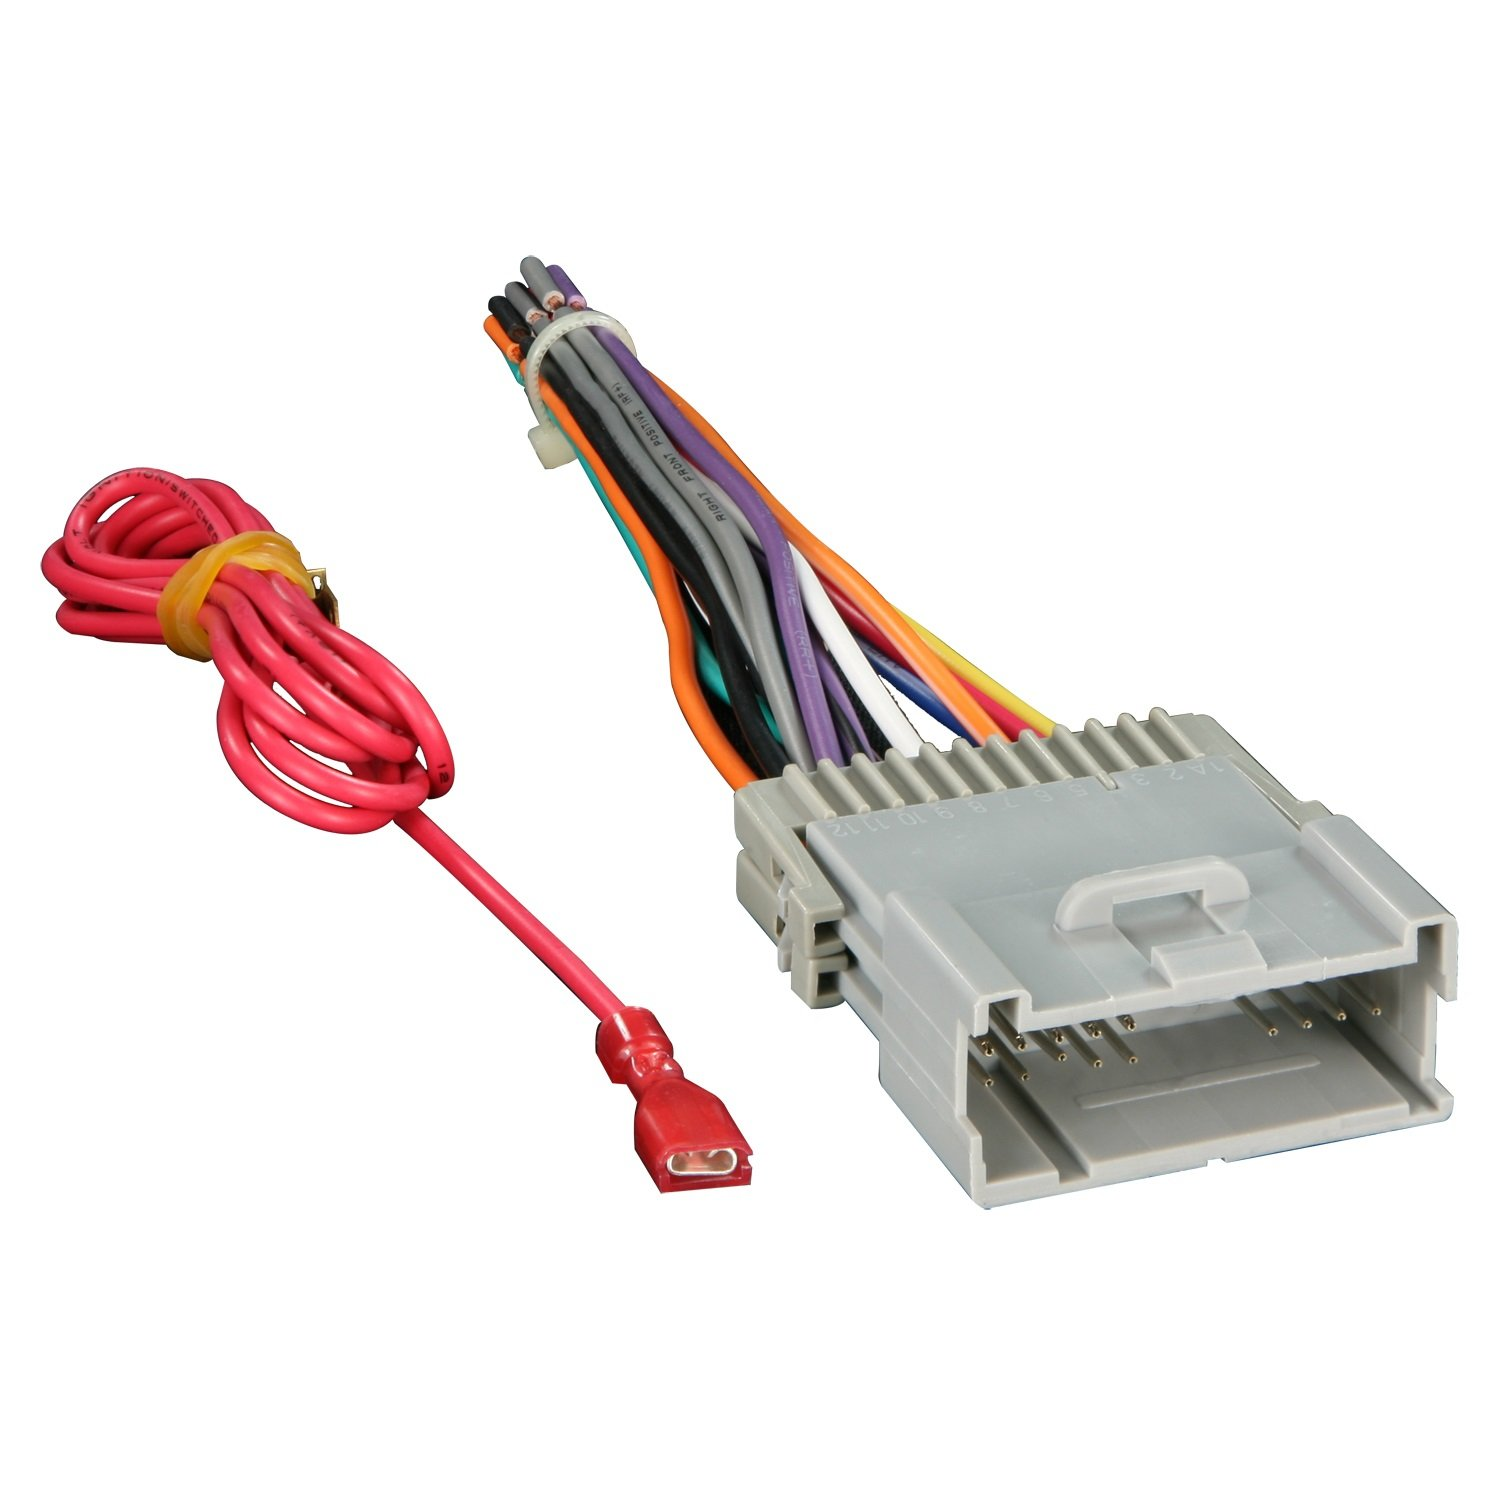 61eewxp9orL._SL1500_ amazon com metra 70 2003 radio wiring harness for gm 98 08 GMC Wiring Harness Diagram at alyssarenee.co